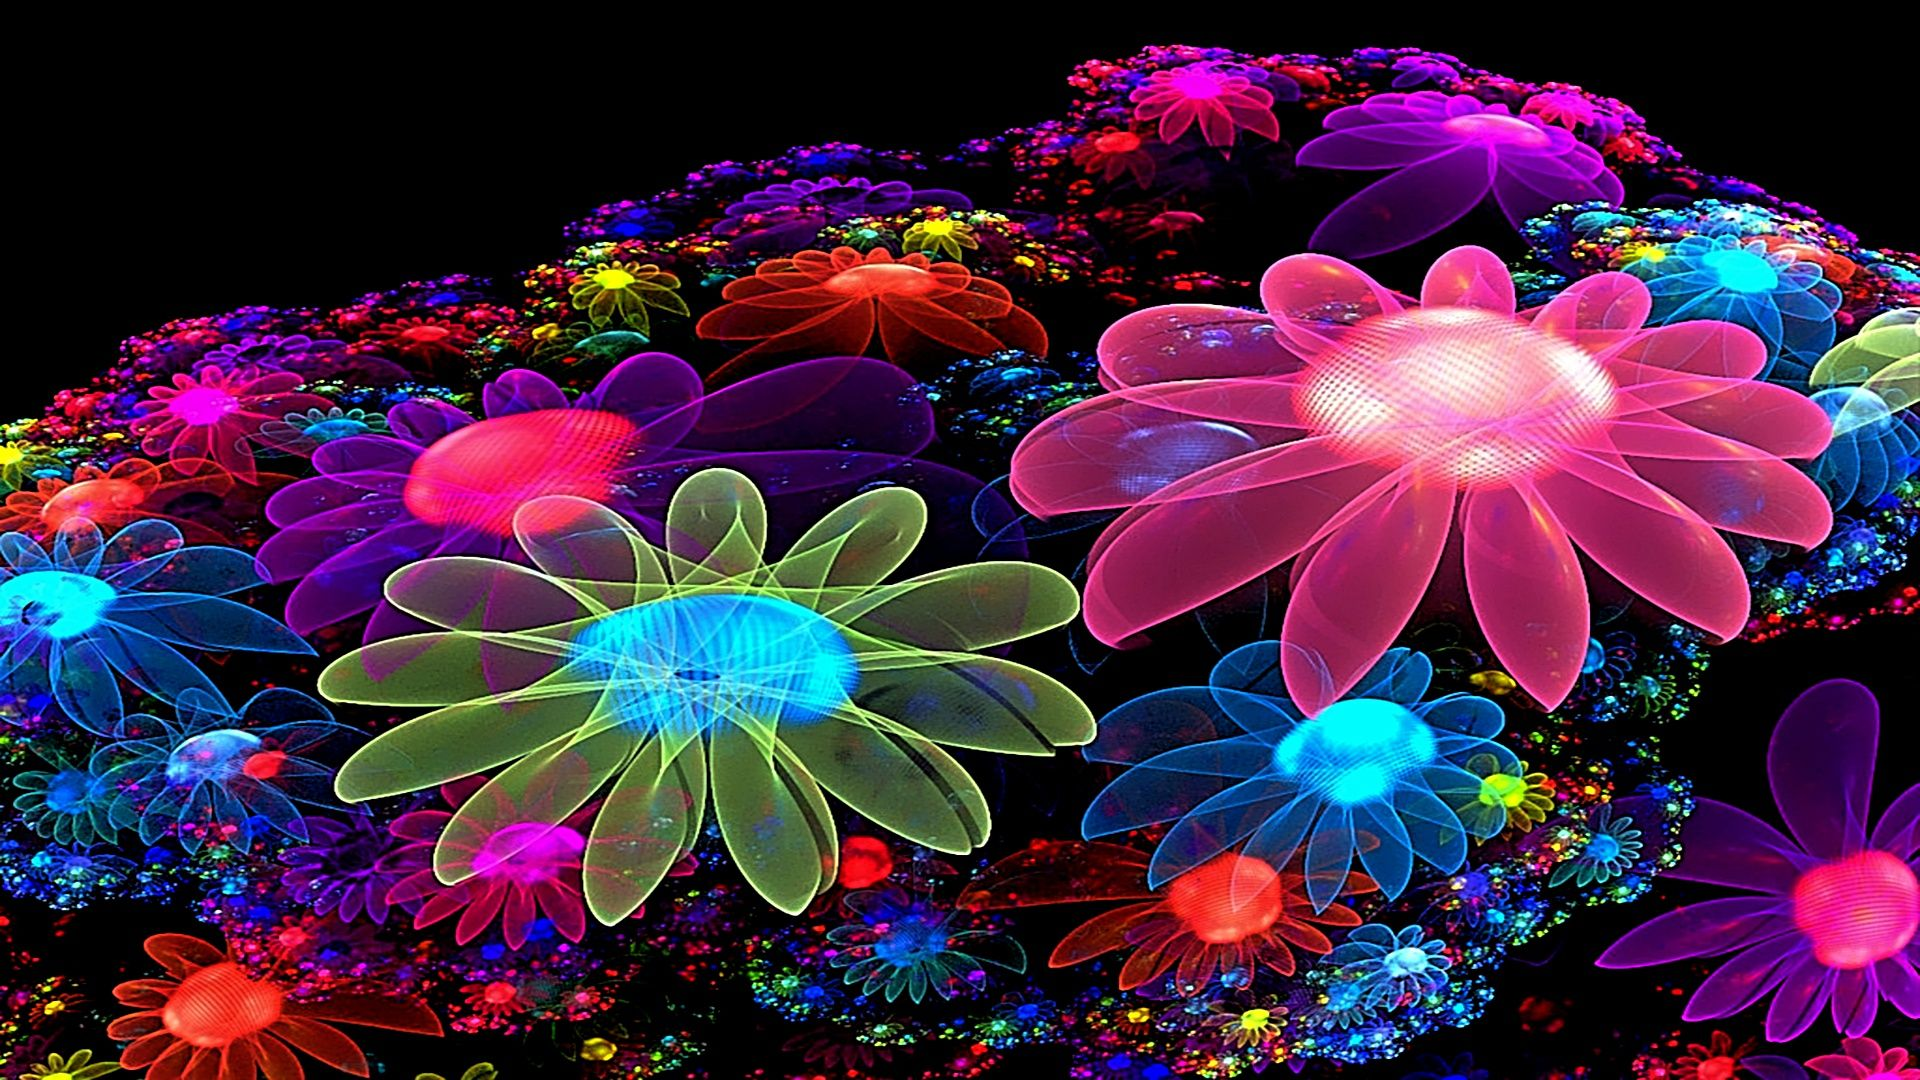 rainbow flowers wallpaper paintings - photo #9